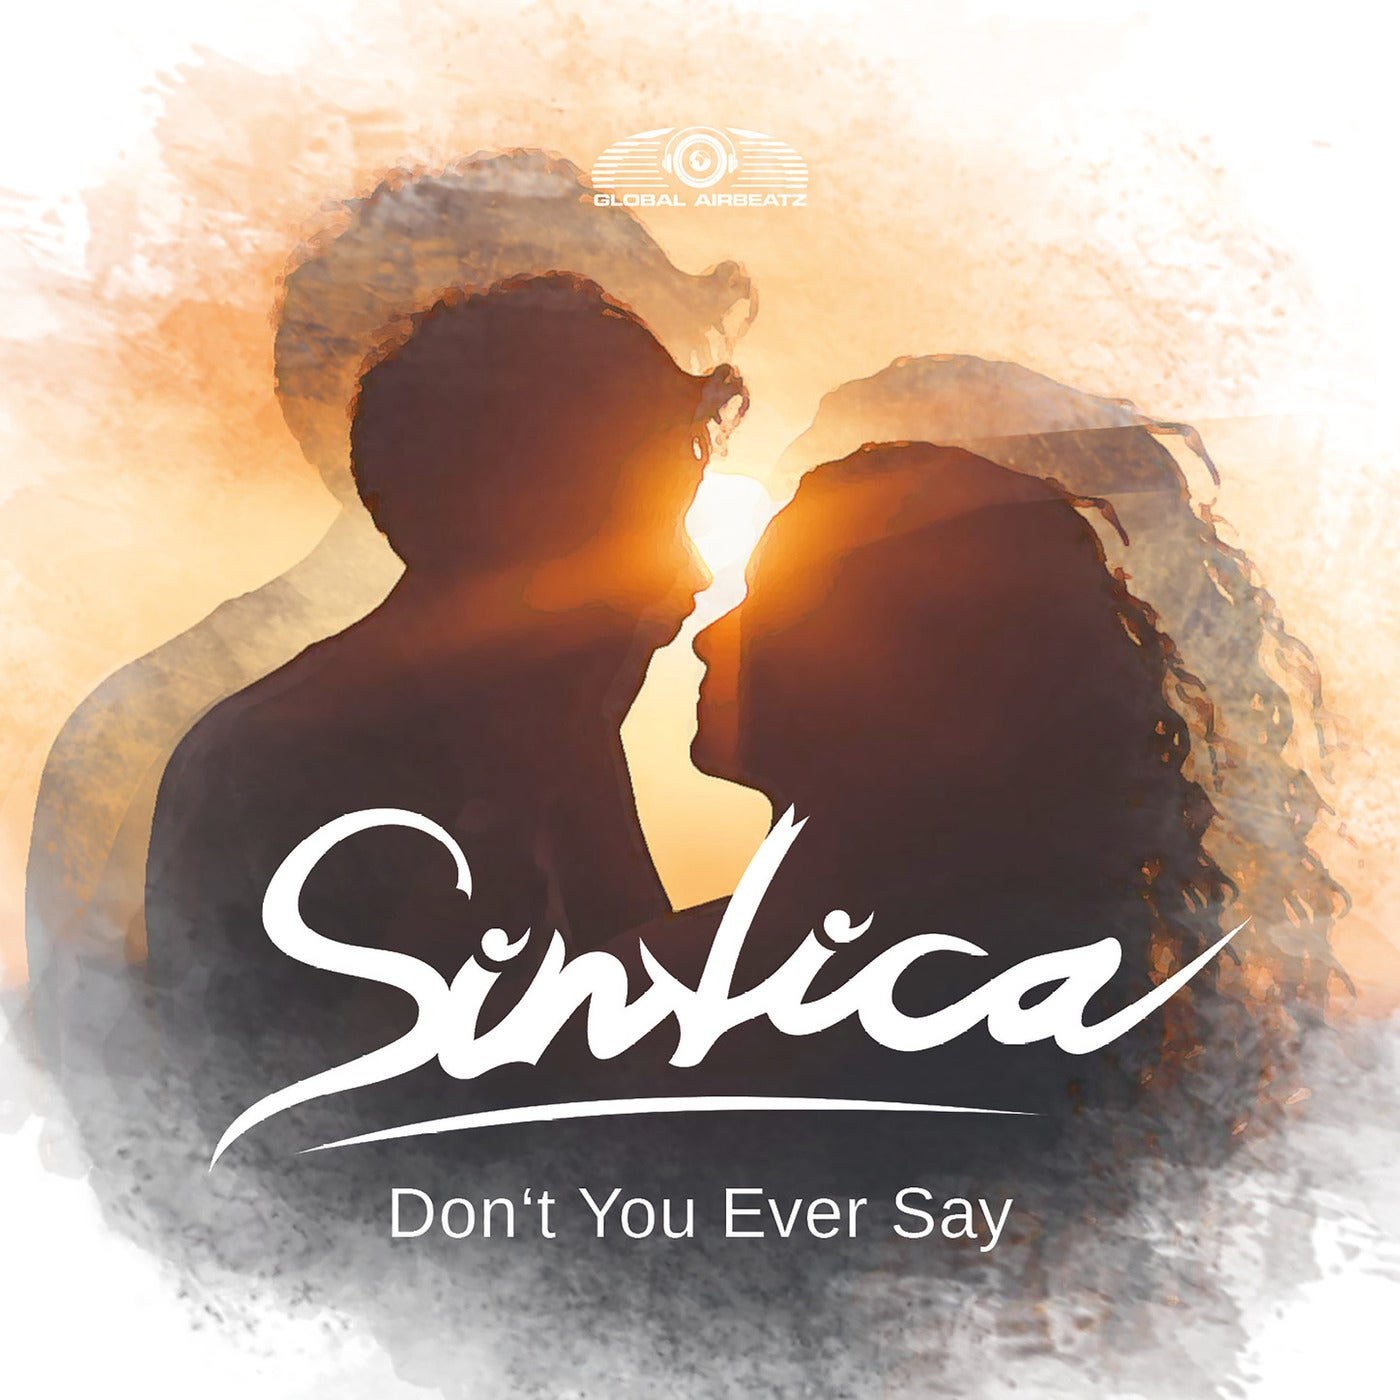 Don't You Ever Say (Extended Mix)